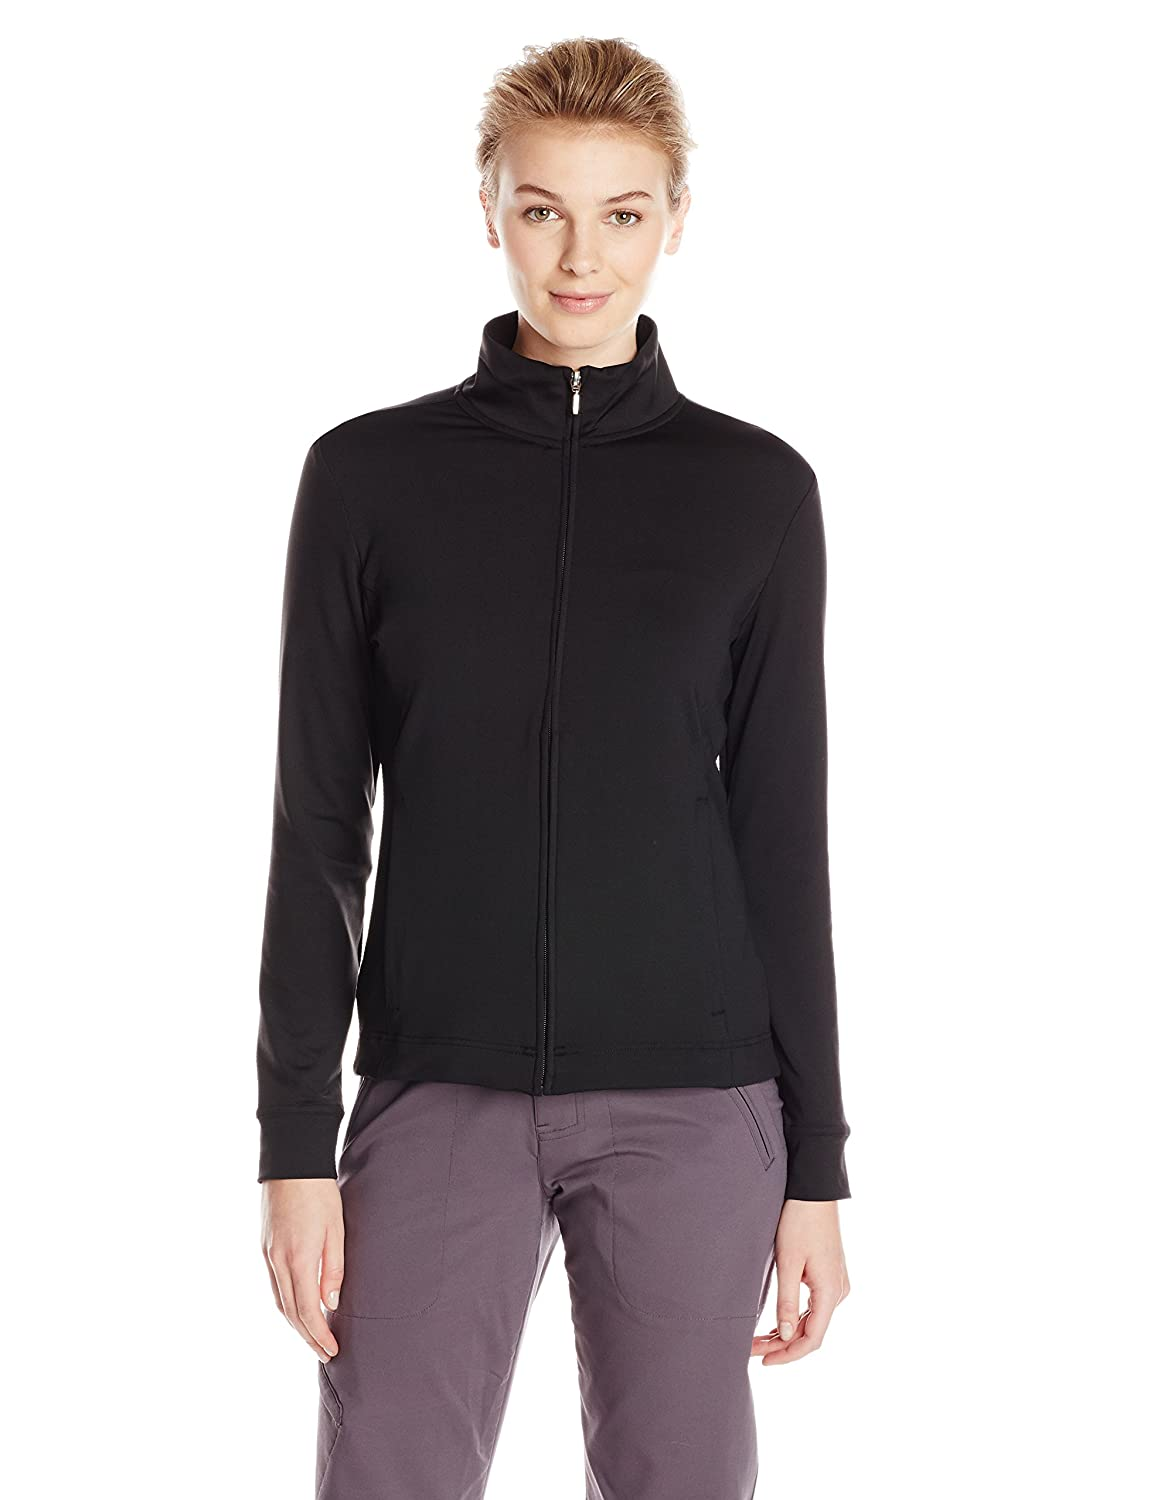 Charles River Apparel Women's Fitness Jacket 5186